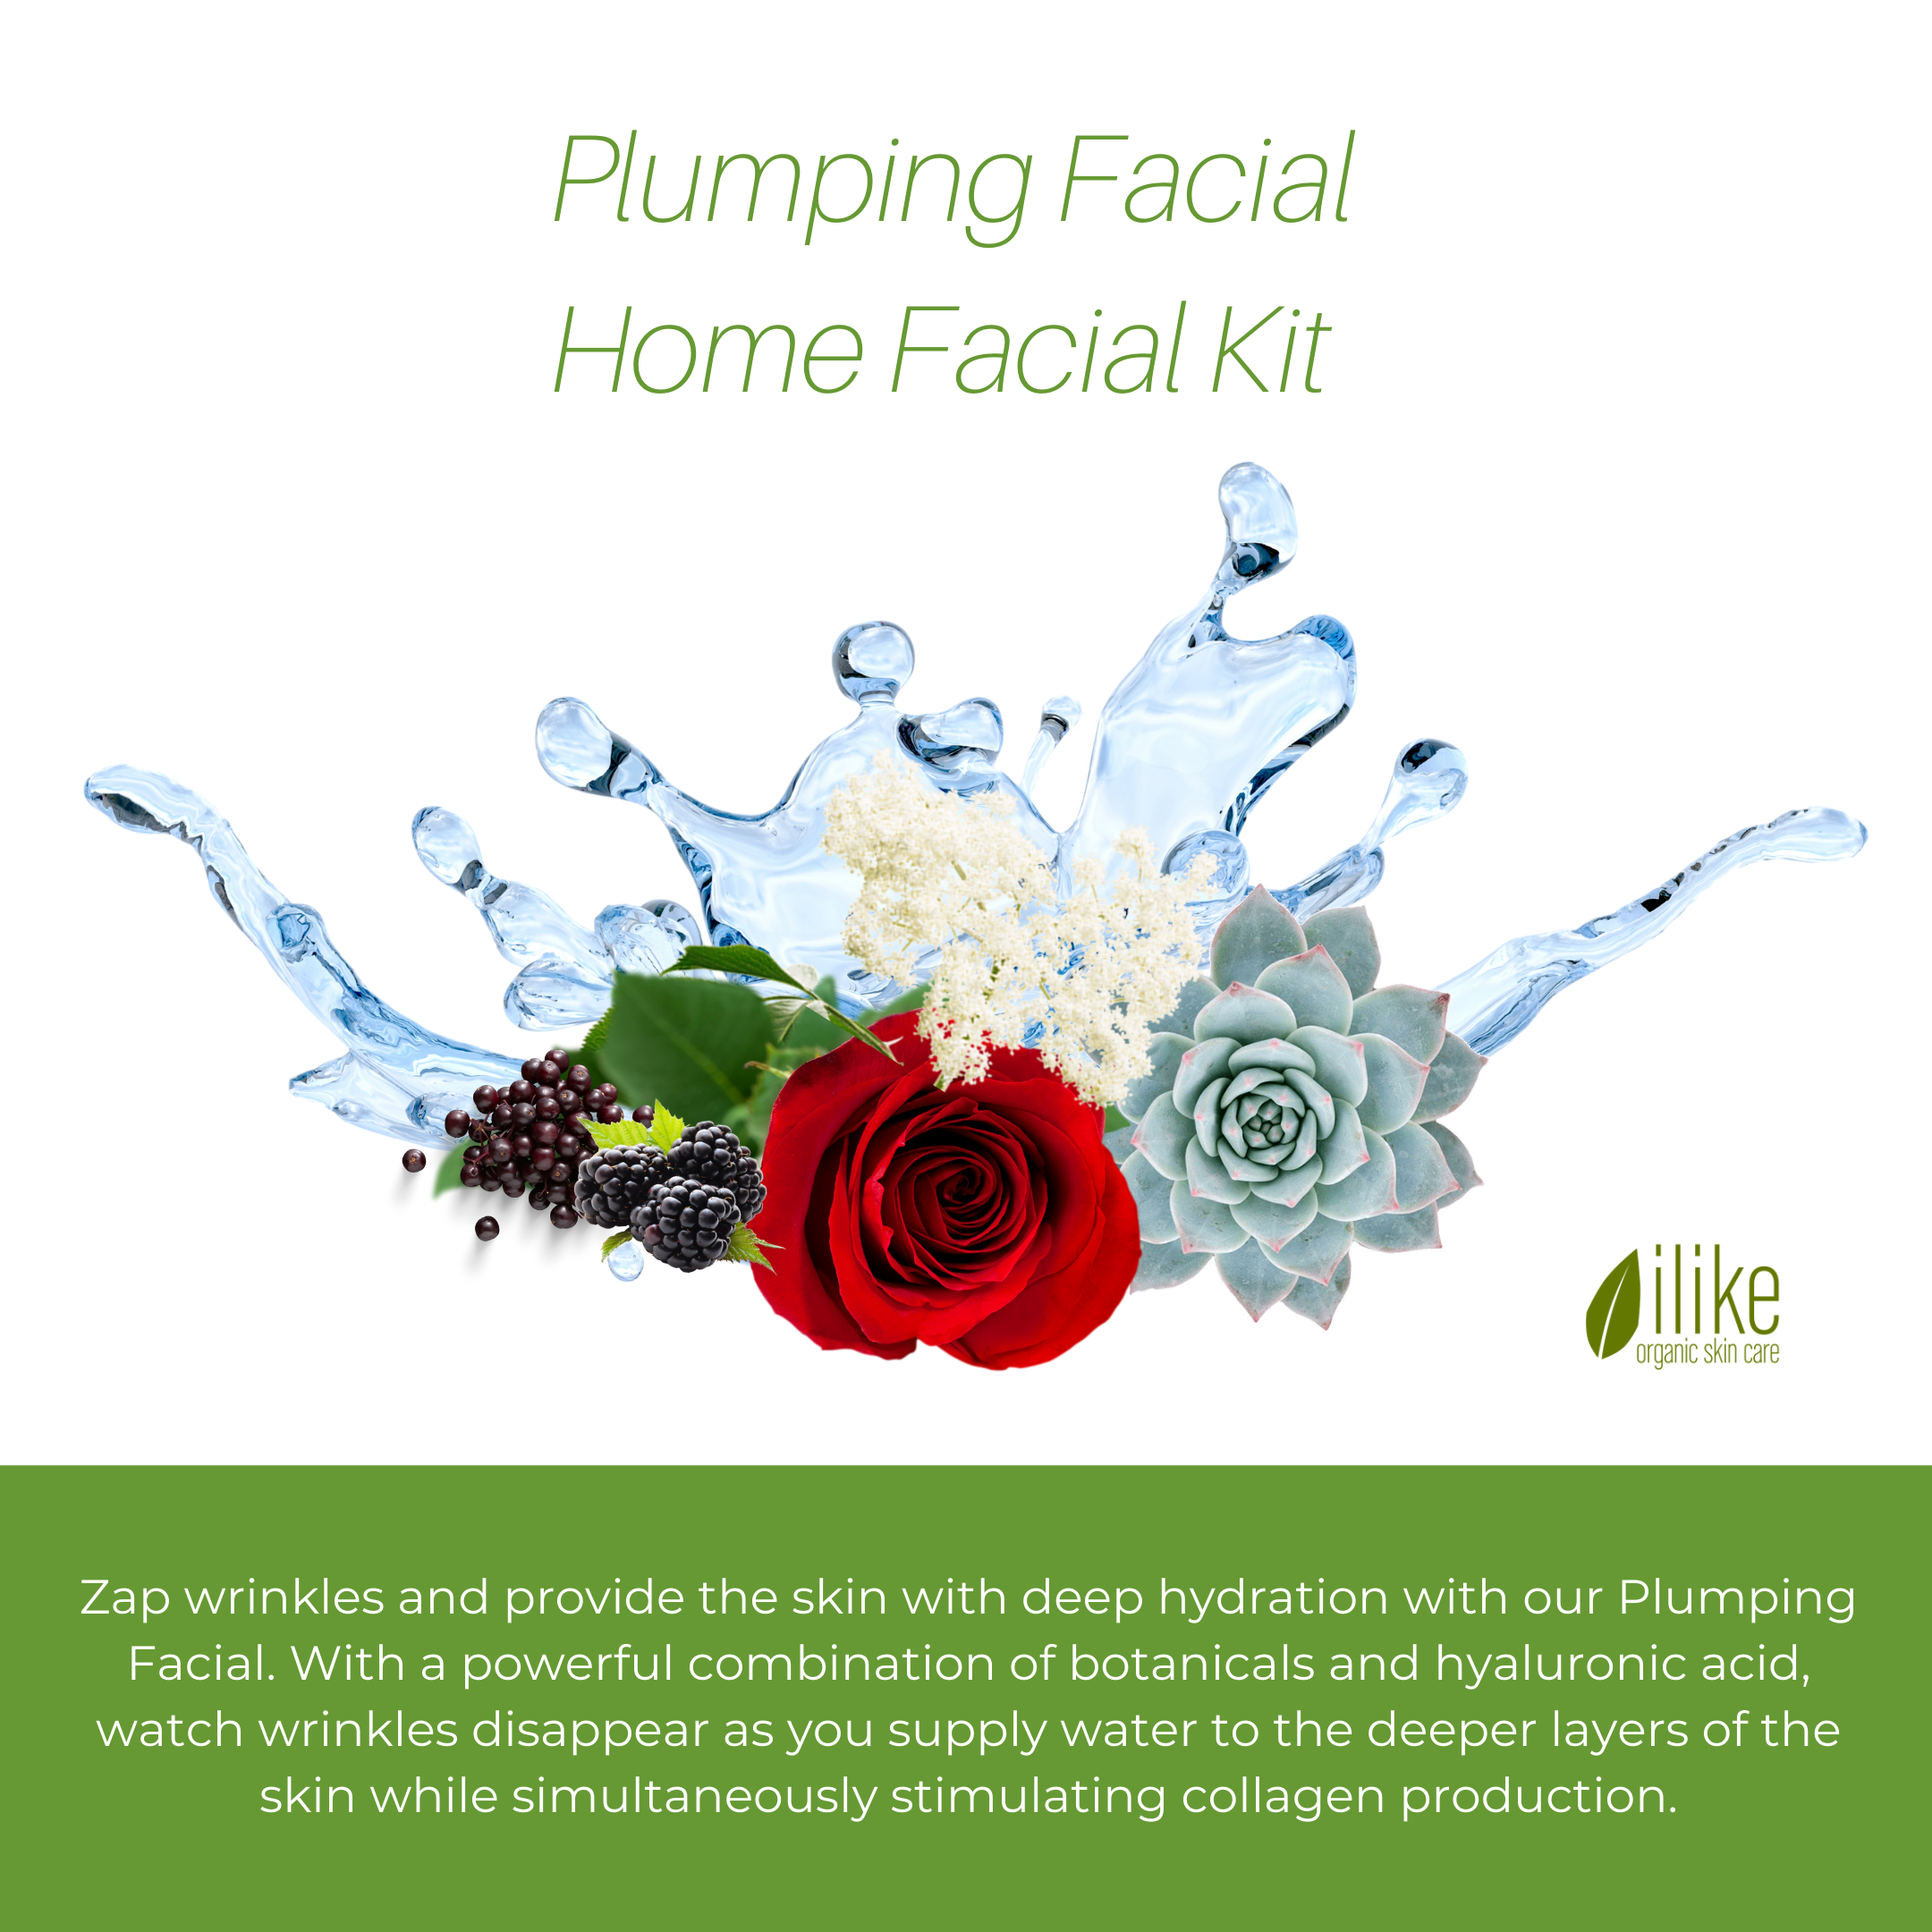 Plumping Facial Home Facial Kit